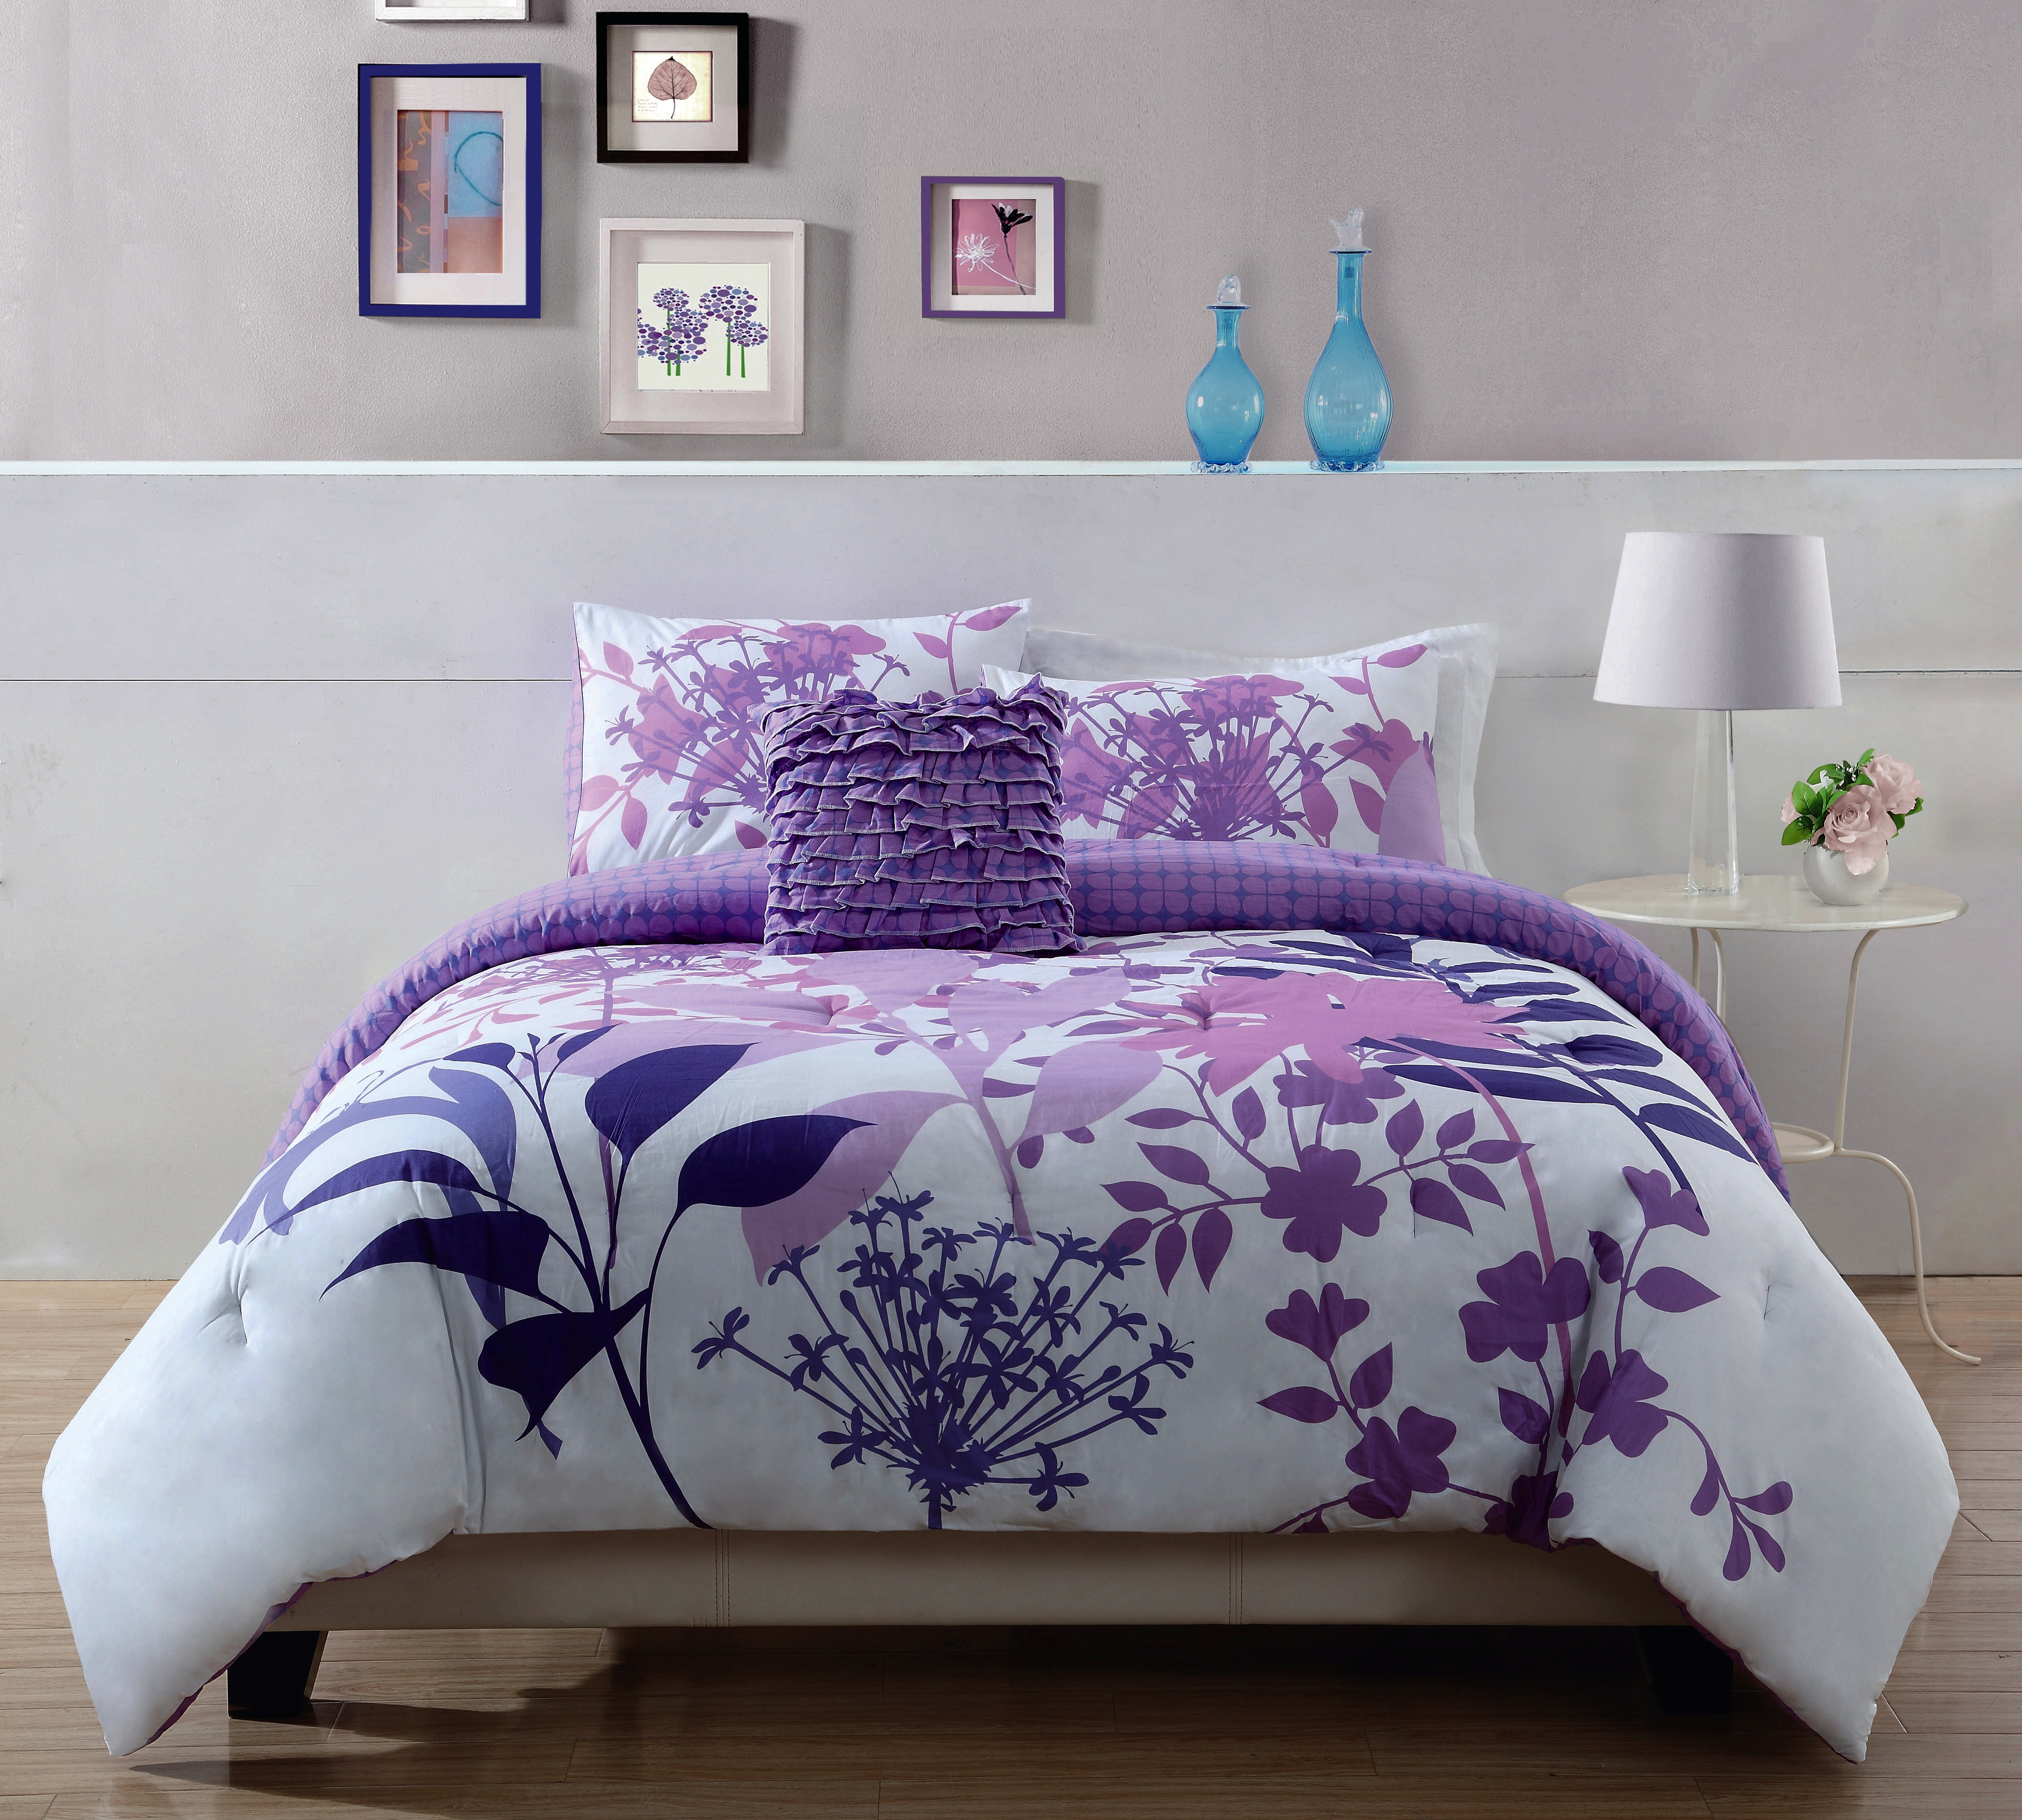 Exquisite purple pattern flower comforters for teens and sidelamp